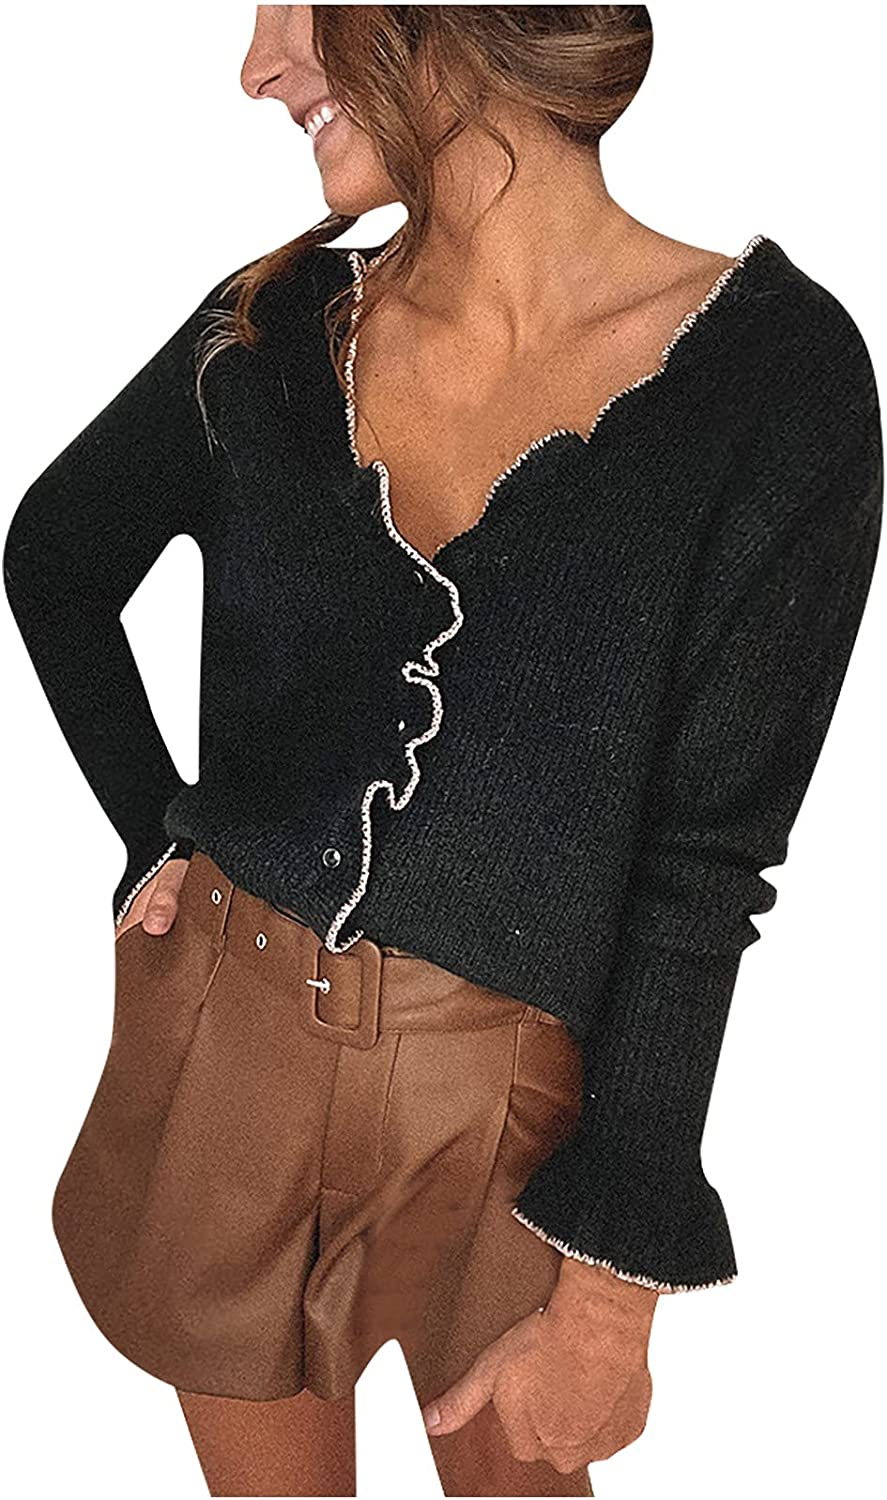 2021 Fashion Buttons Cardigan for Women's Casual Thin Blouse Long Sleeve V-Neck Solid Ladies Knitted Sweater Tops